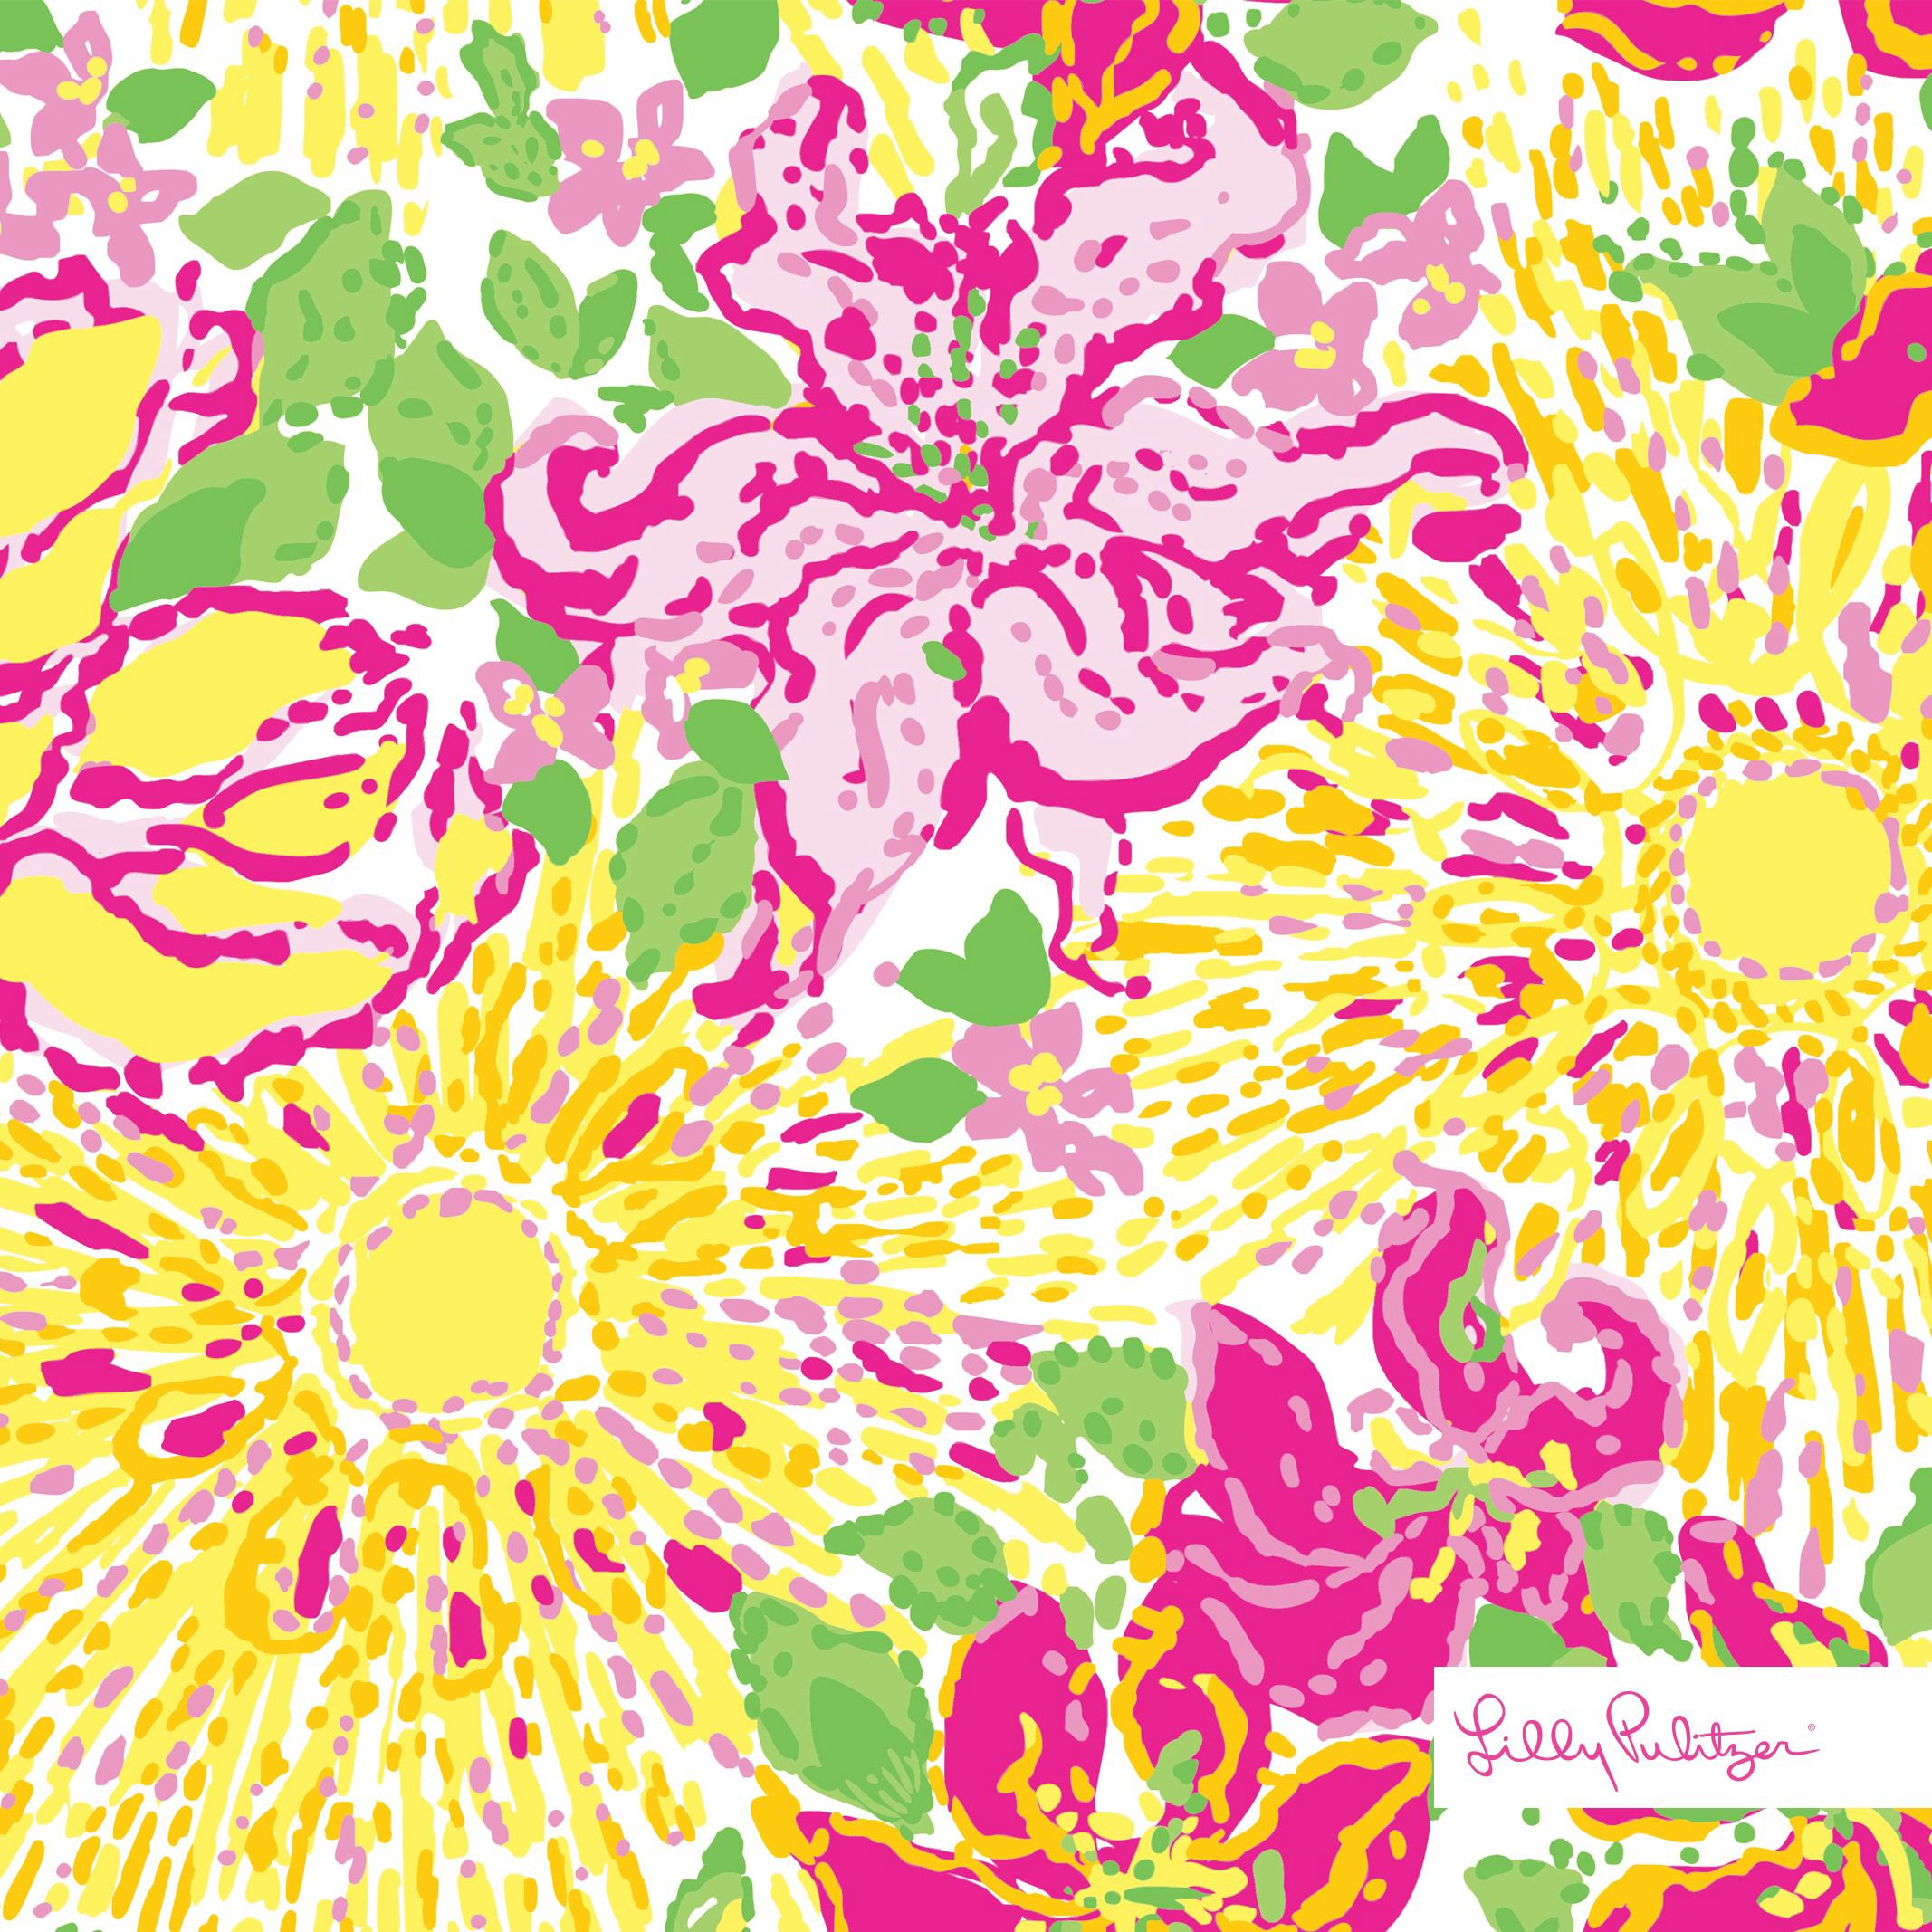 Lu Lu from Lilly! Iphone wallpaper kate spade, Lilly